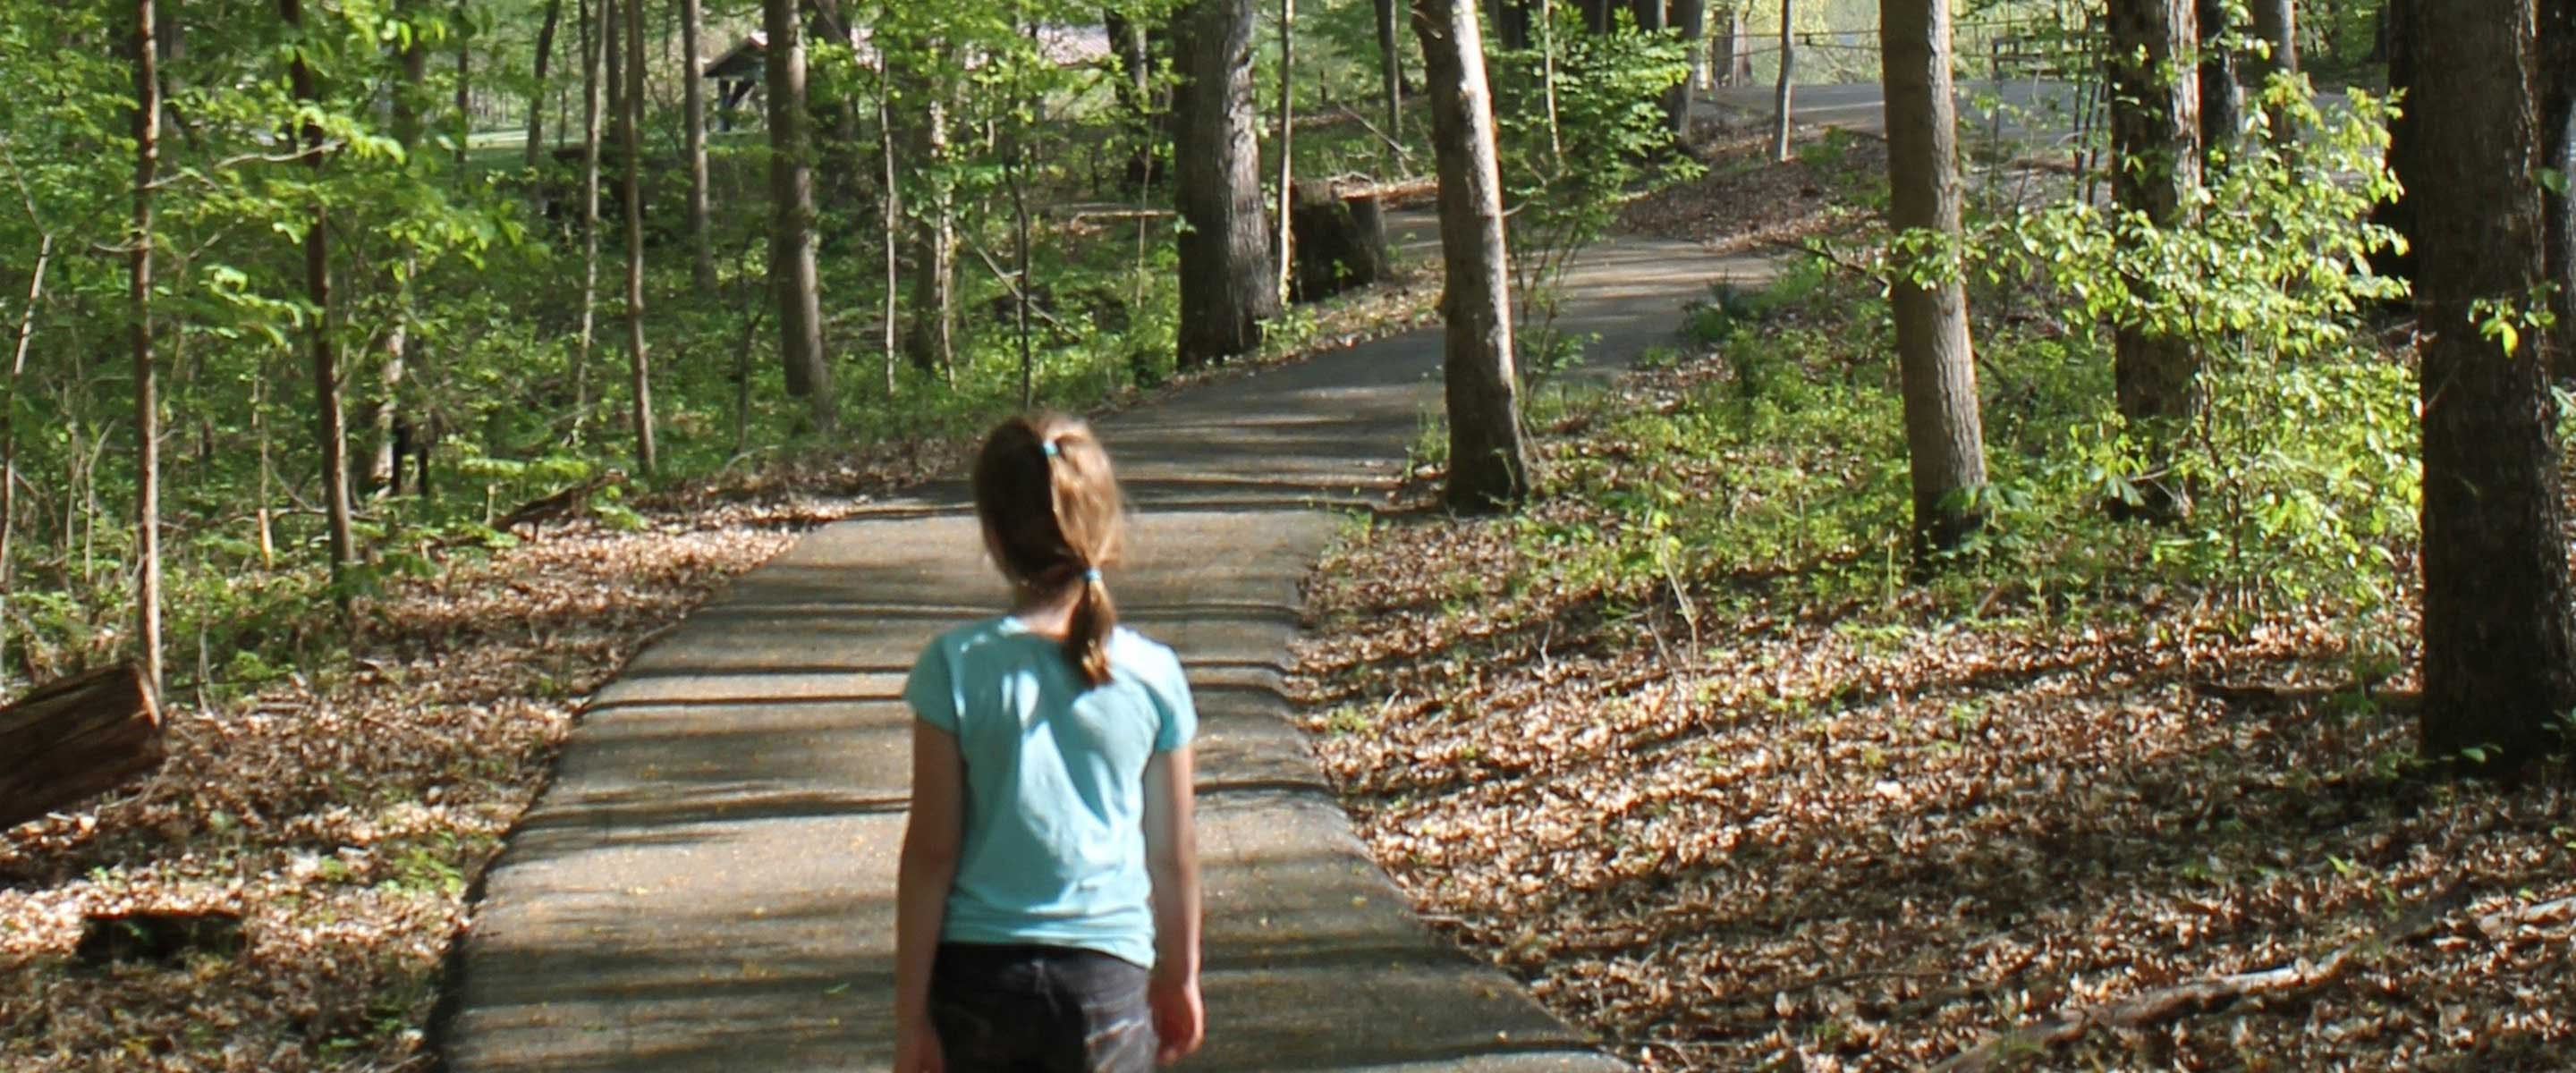 girl walking on paved nature trail to tree forrest canopy area in shade